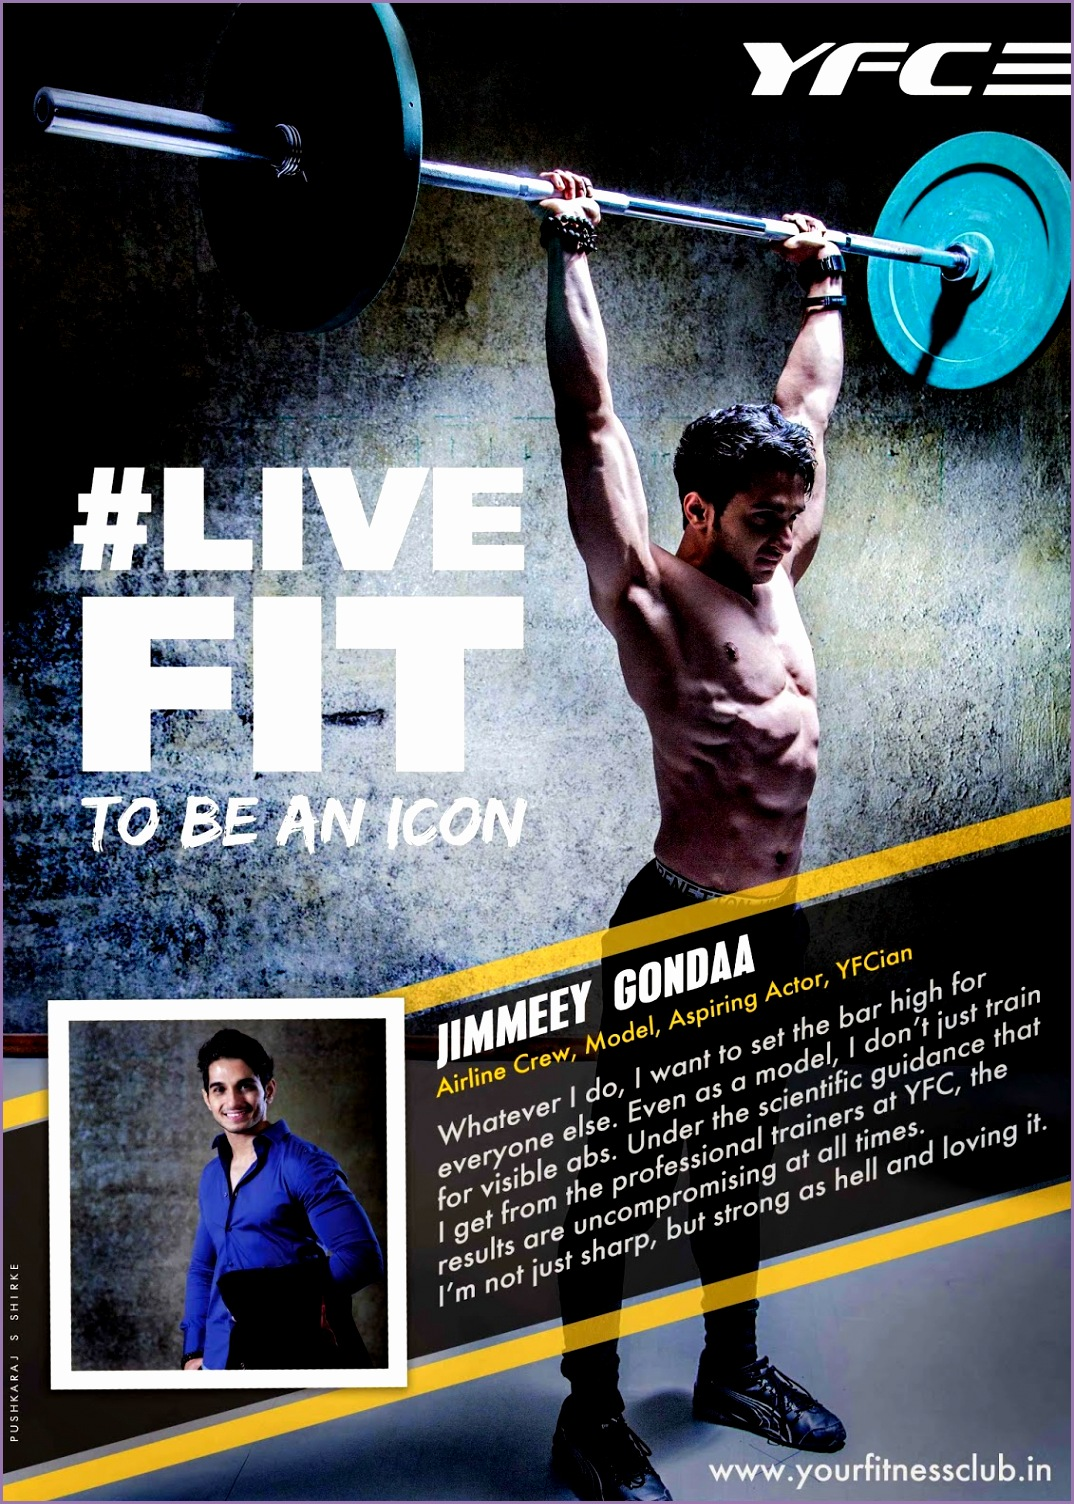 Pushkaraj S Shirke Your Fitness Club LIVEFIT Gym Advertising Camp